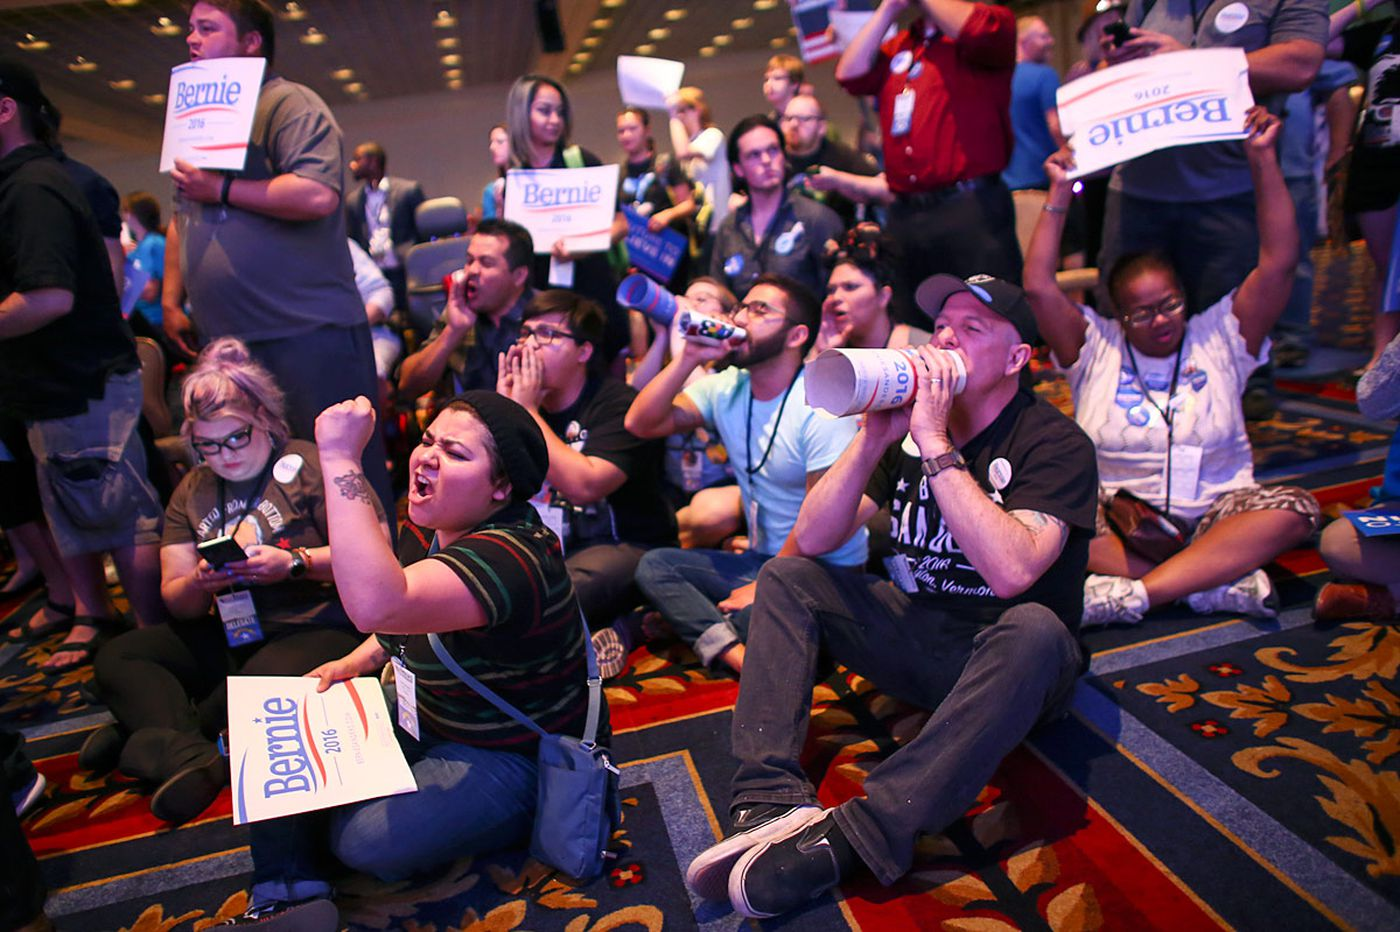 #BernieorBust Democrats plan convention protests